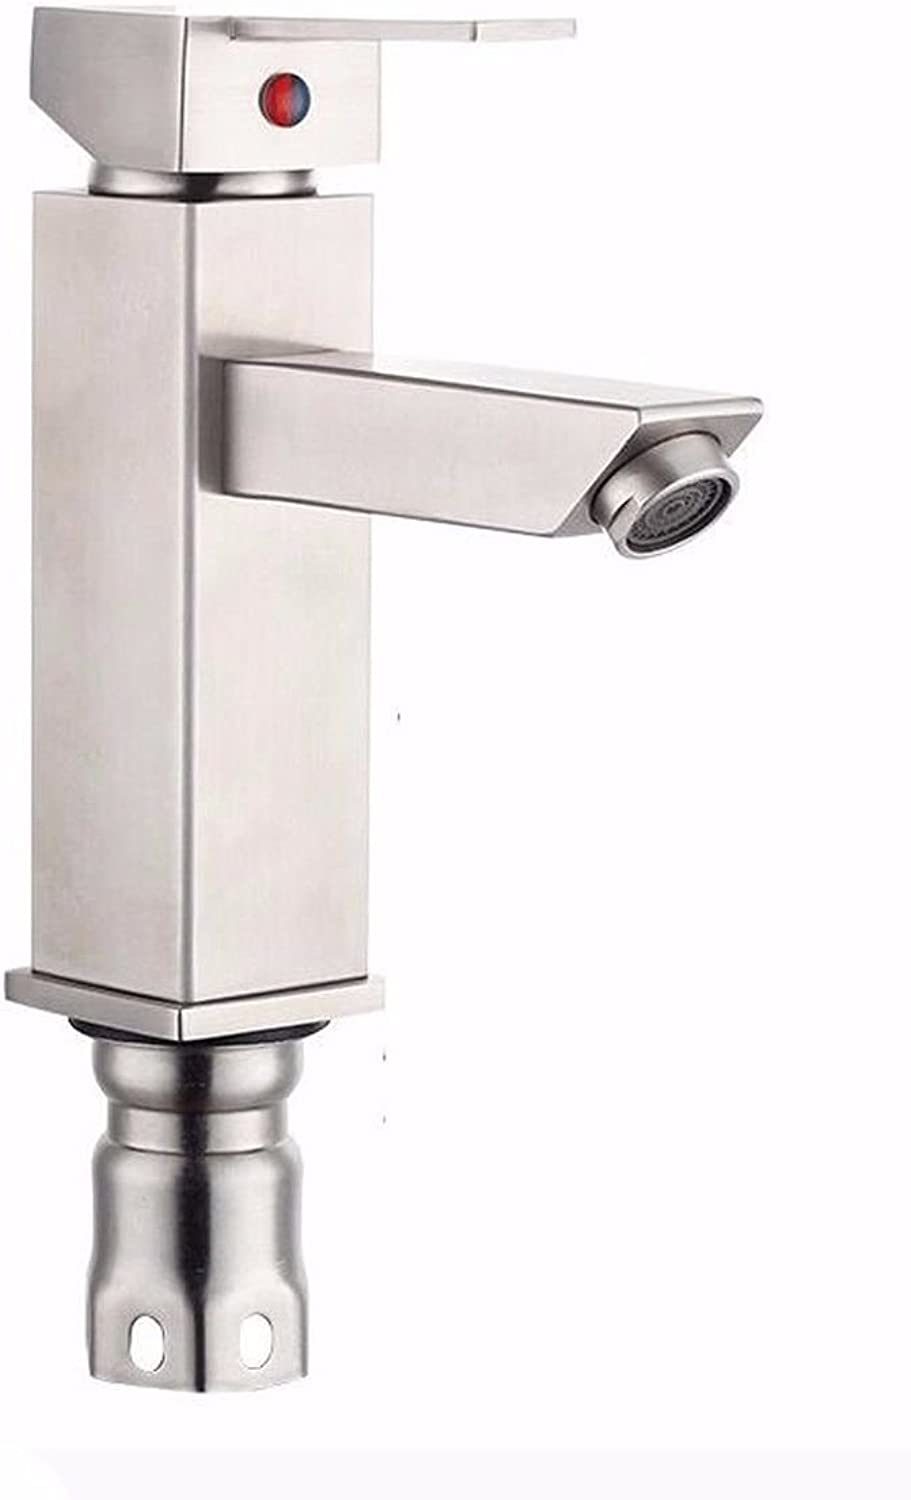 Hlluya Professional Sink Mixer Tap Kitchen Faucet The quartet 304 Stainless Steel Basin lowered basin faucet stainless steel Faucet